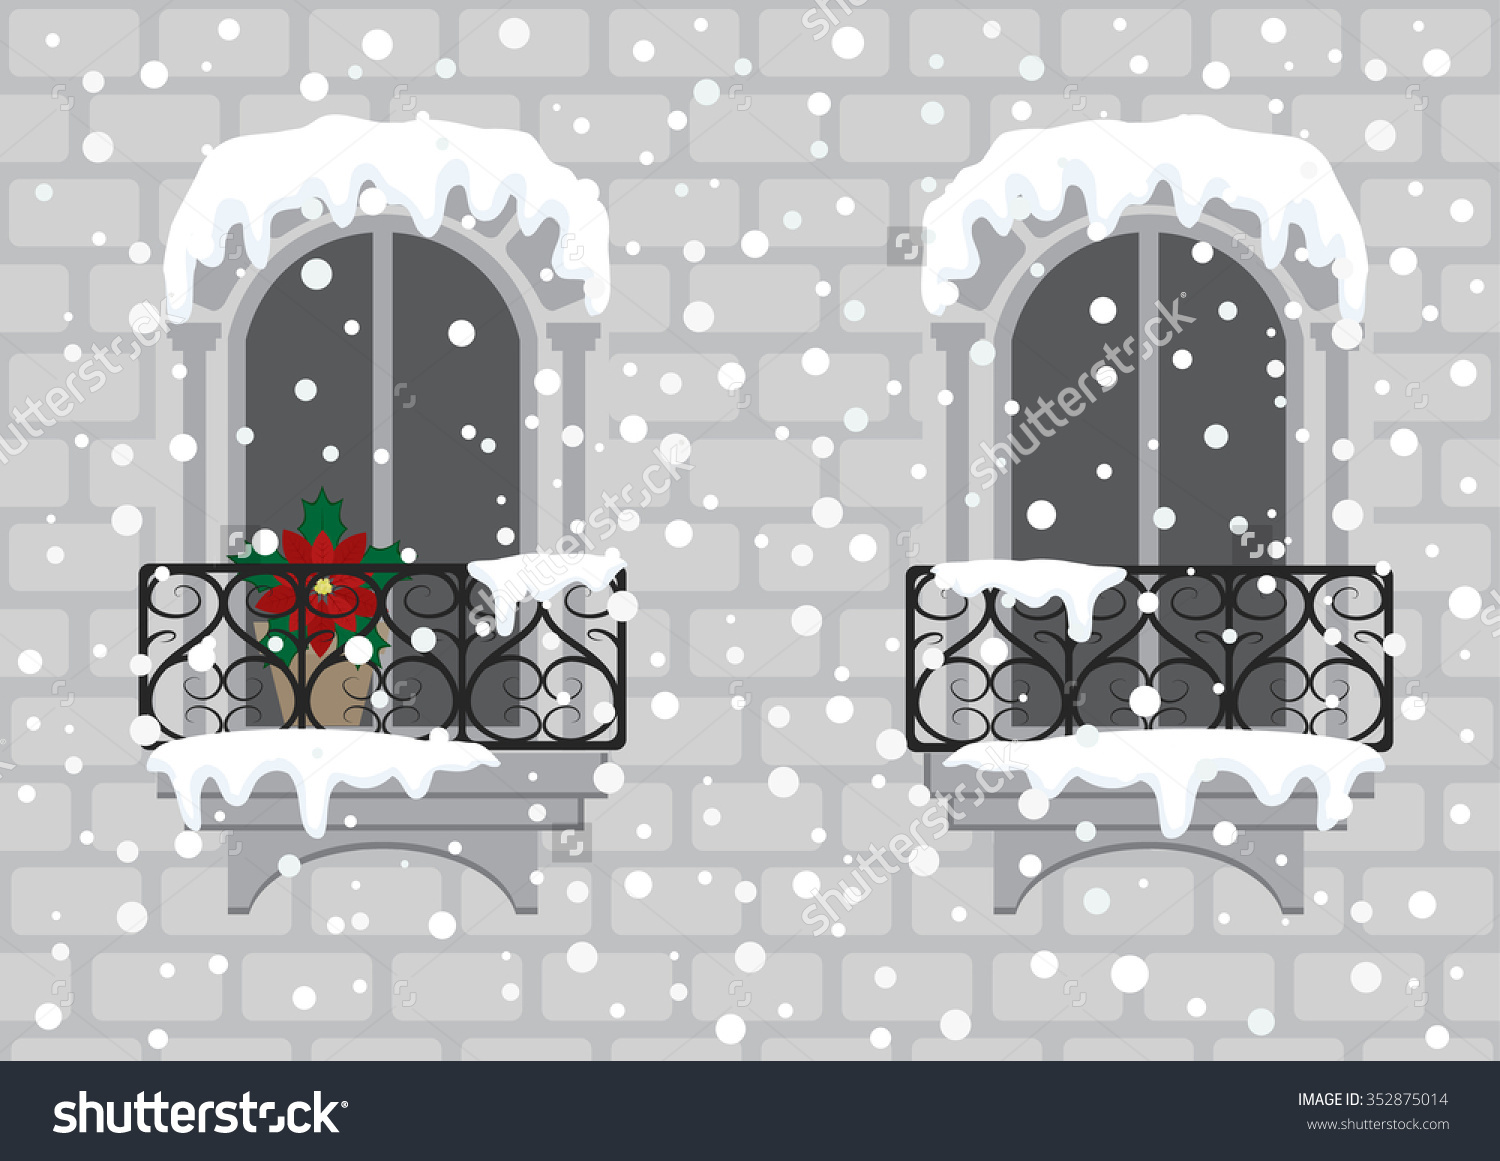 Cartoon Clip Art Windows Red Christmas Stock Vector 352875014.